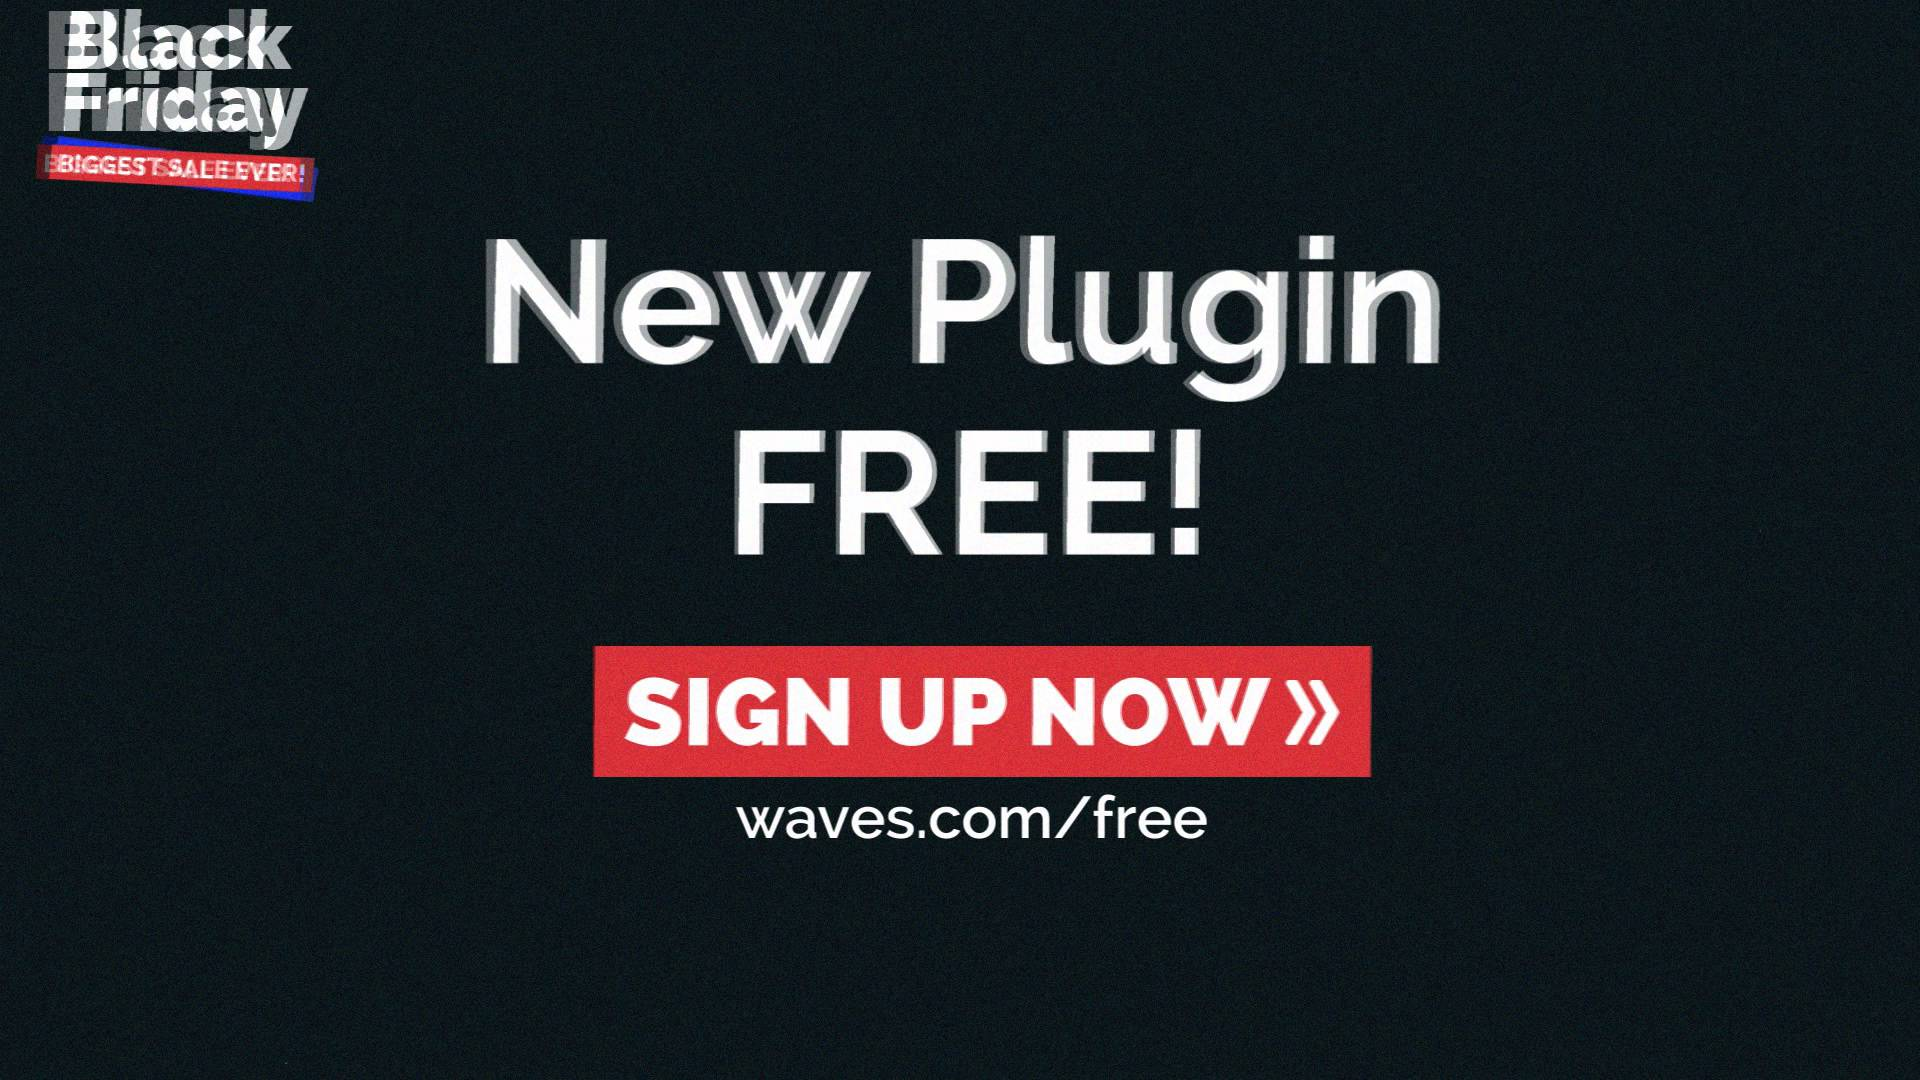 Plugin gratis de Waves en celebración del Black Friday